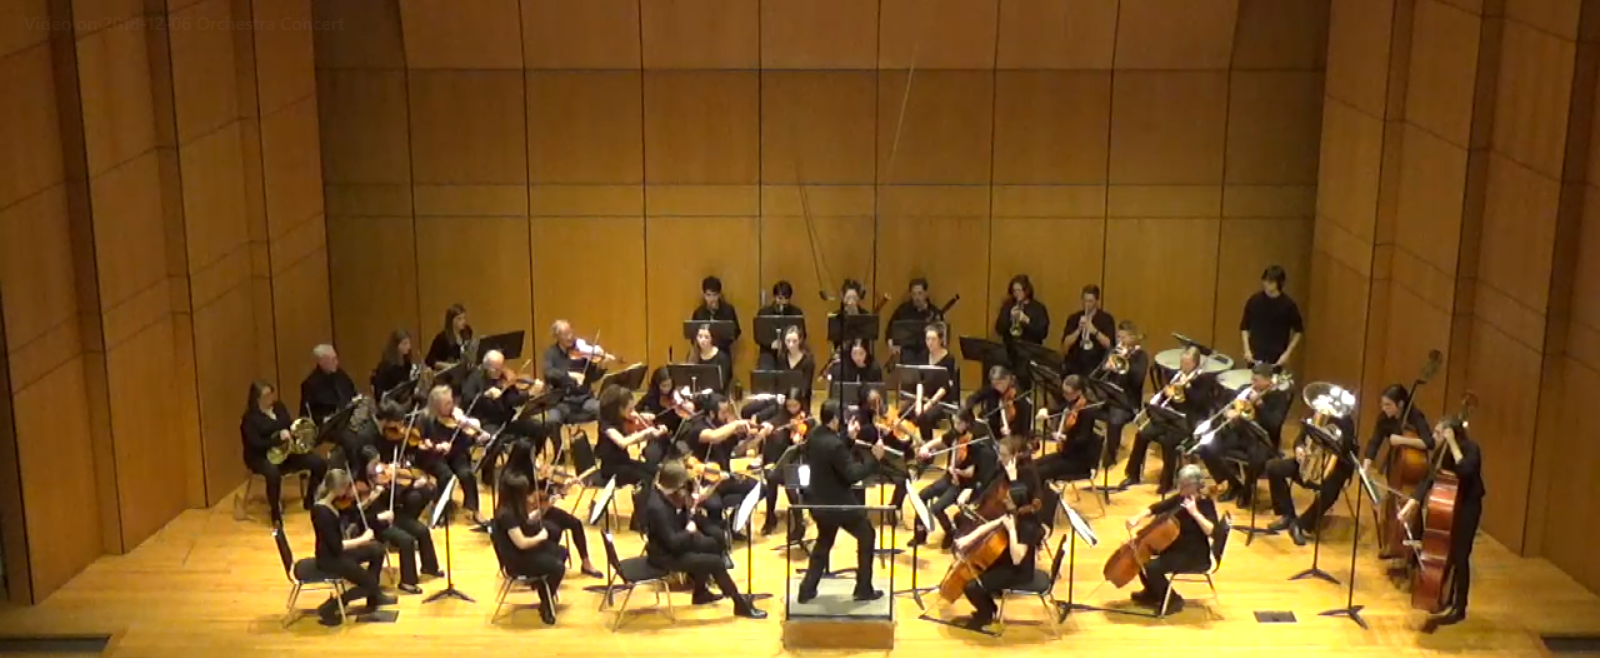 A view of the orchestra playing on stage at Conn.